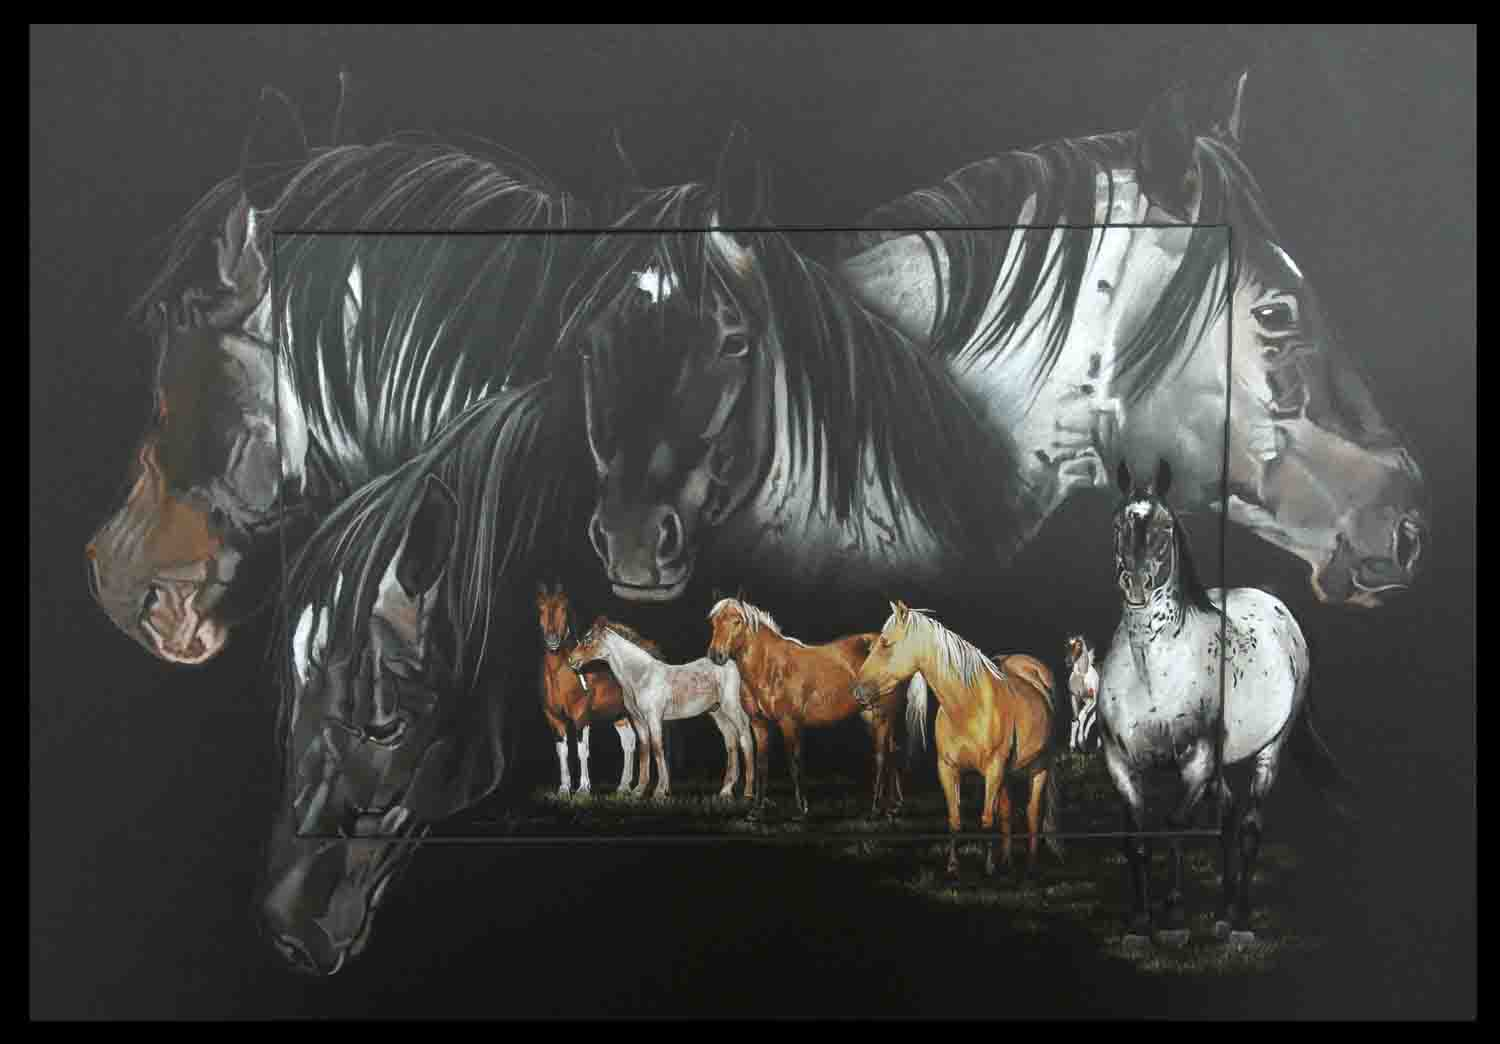 INDIGO, stallion - 50x70cm - AV for sale